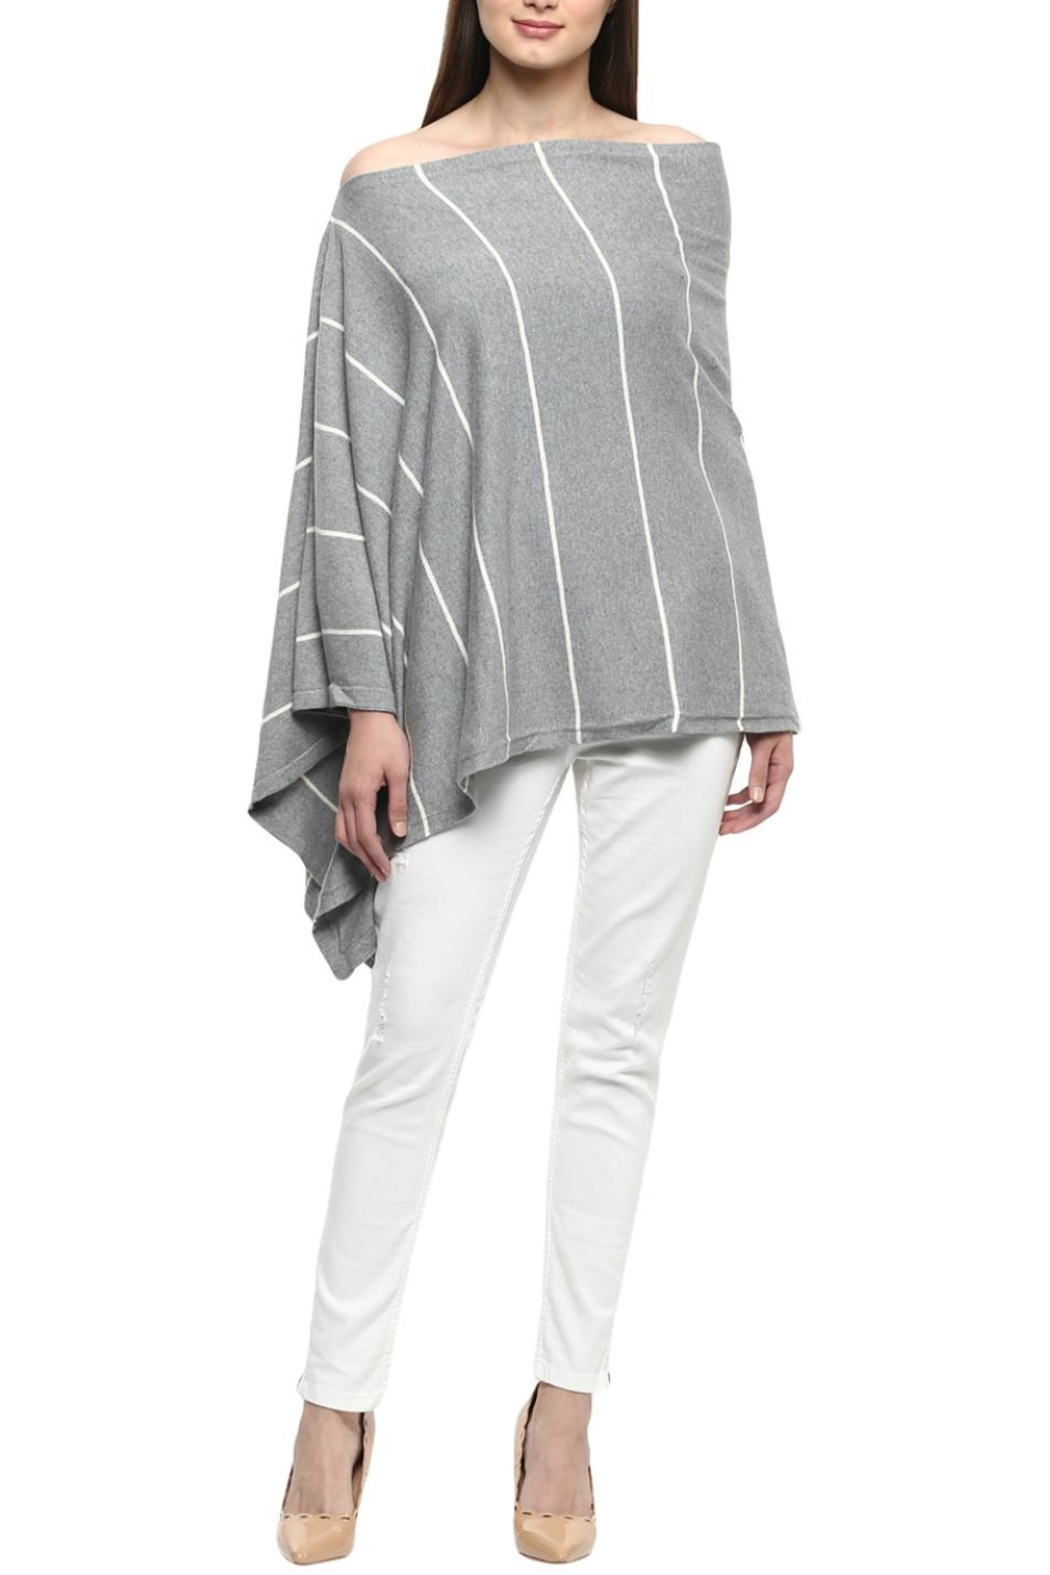 Darzzi Nautical Stripe Poncho - Main Image